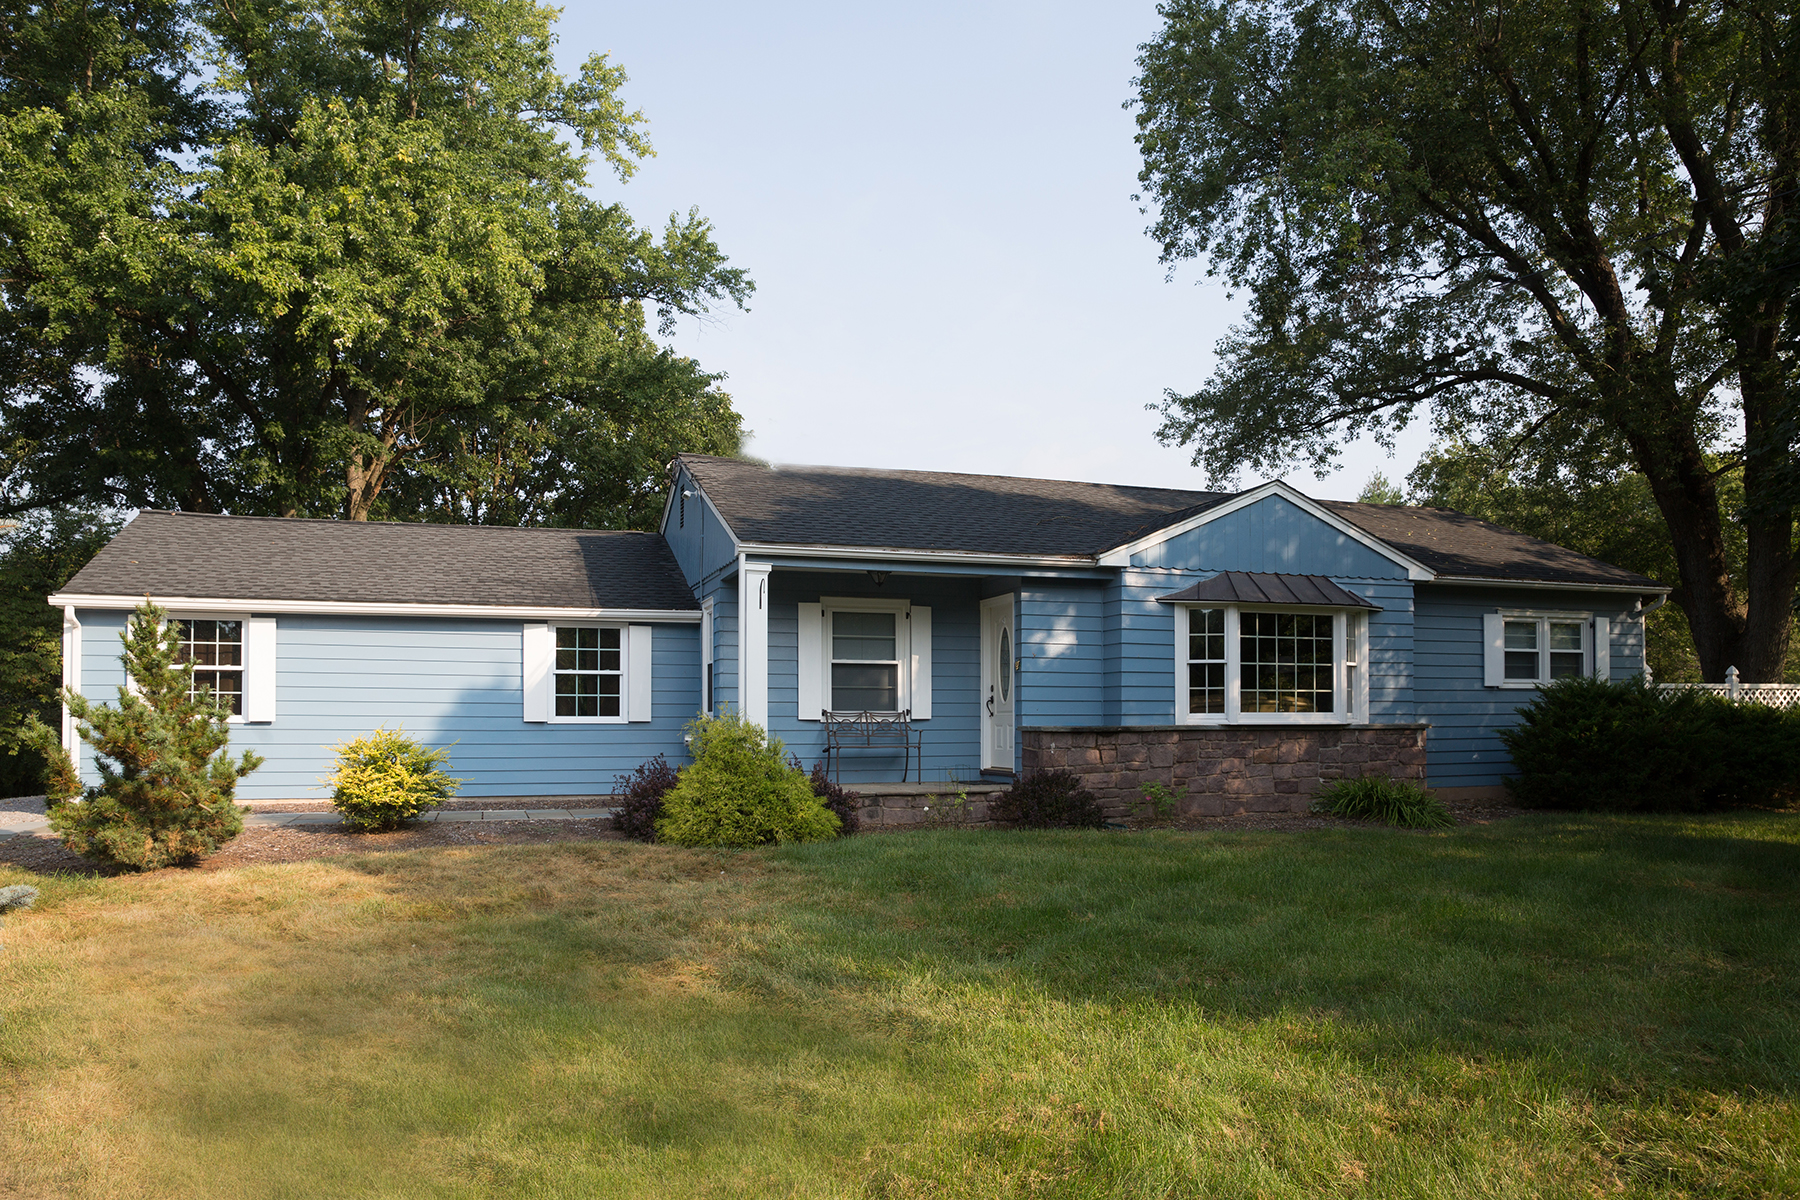 Other Residential for Sale at New Hope, PA 6751 Chapel Rd New Hope, Pennsylvania, 18938 United States